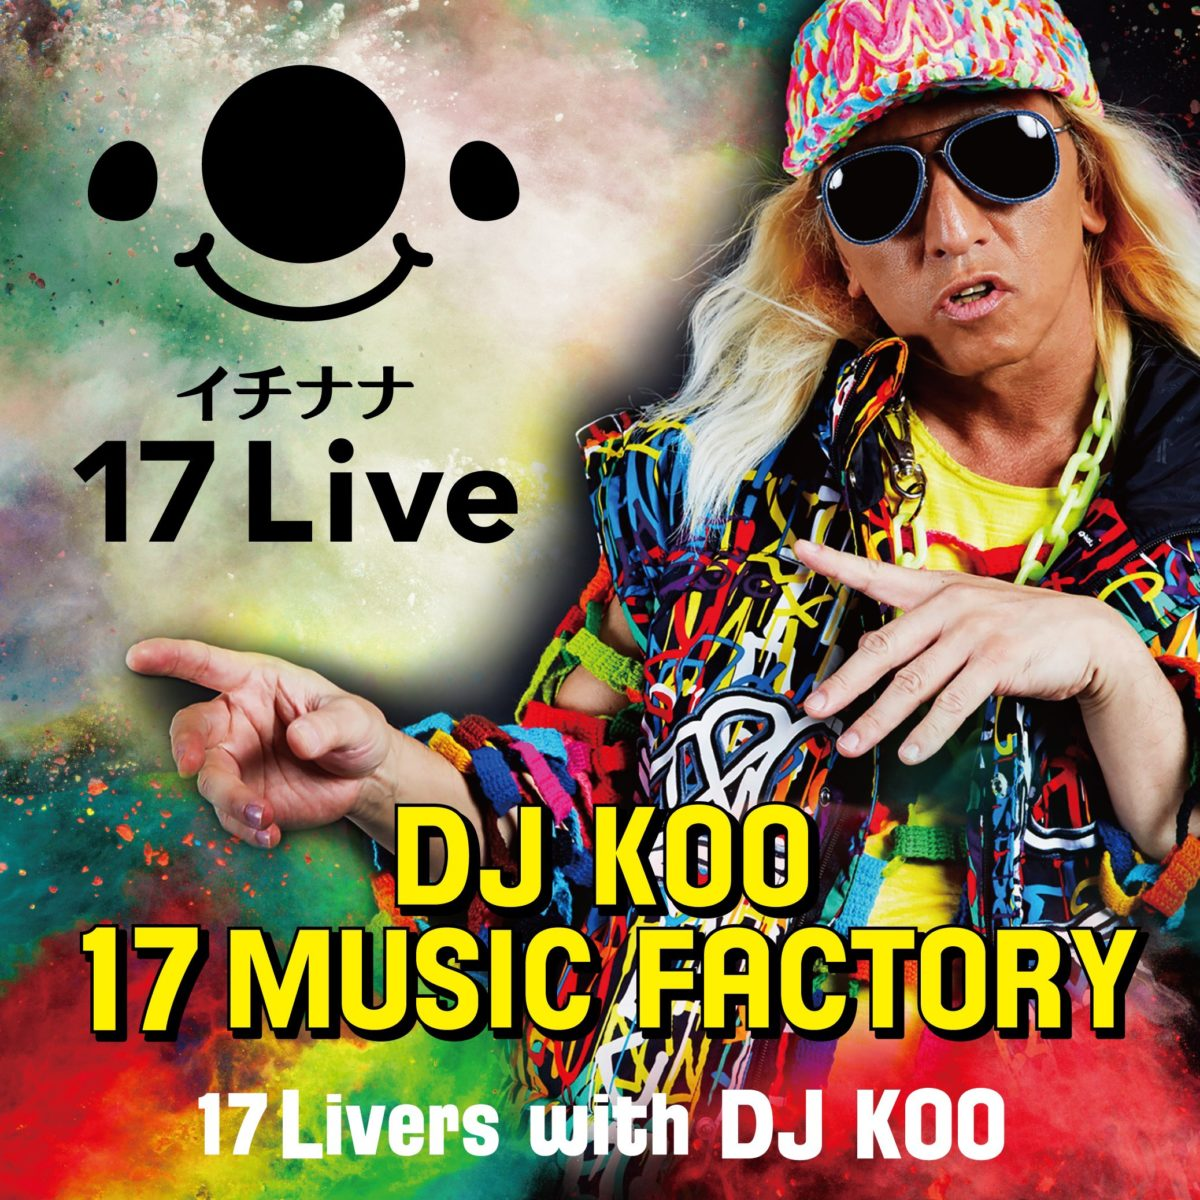 『DJ KOO 17 MUSIC FACTORY』iTunes J-POPカテゴリ3位獲得🎉